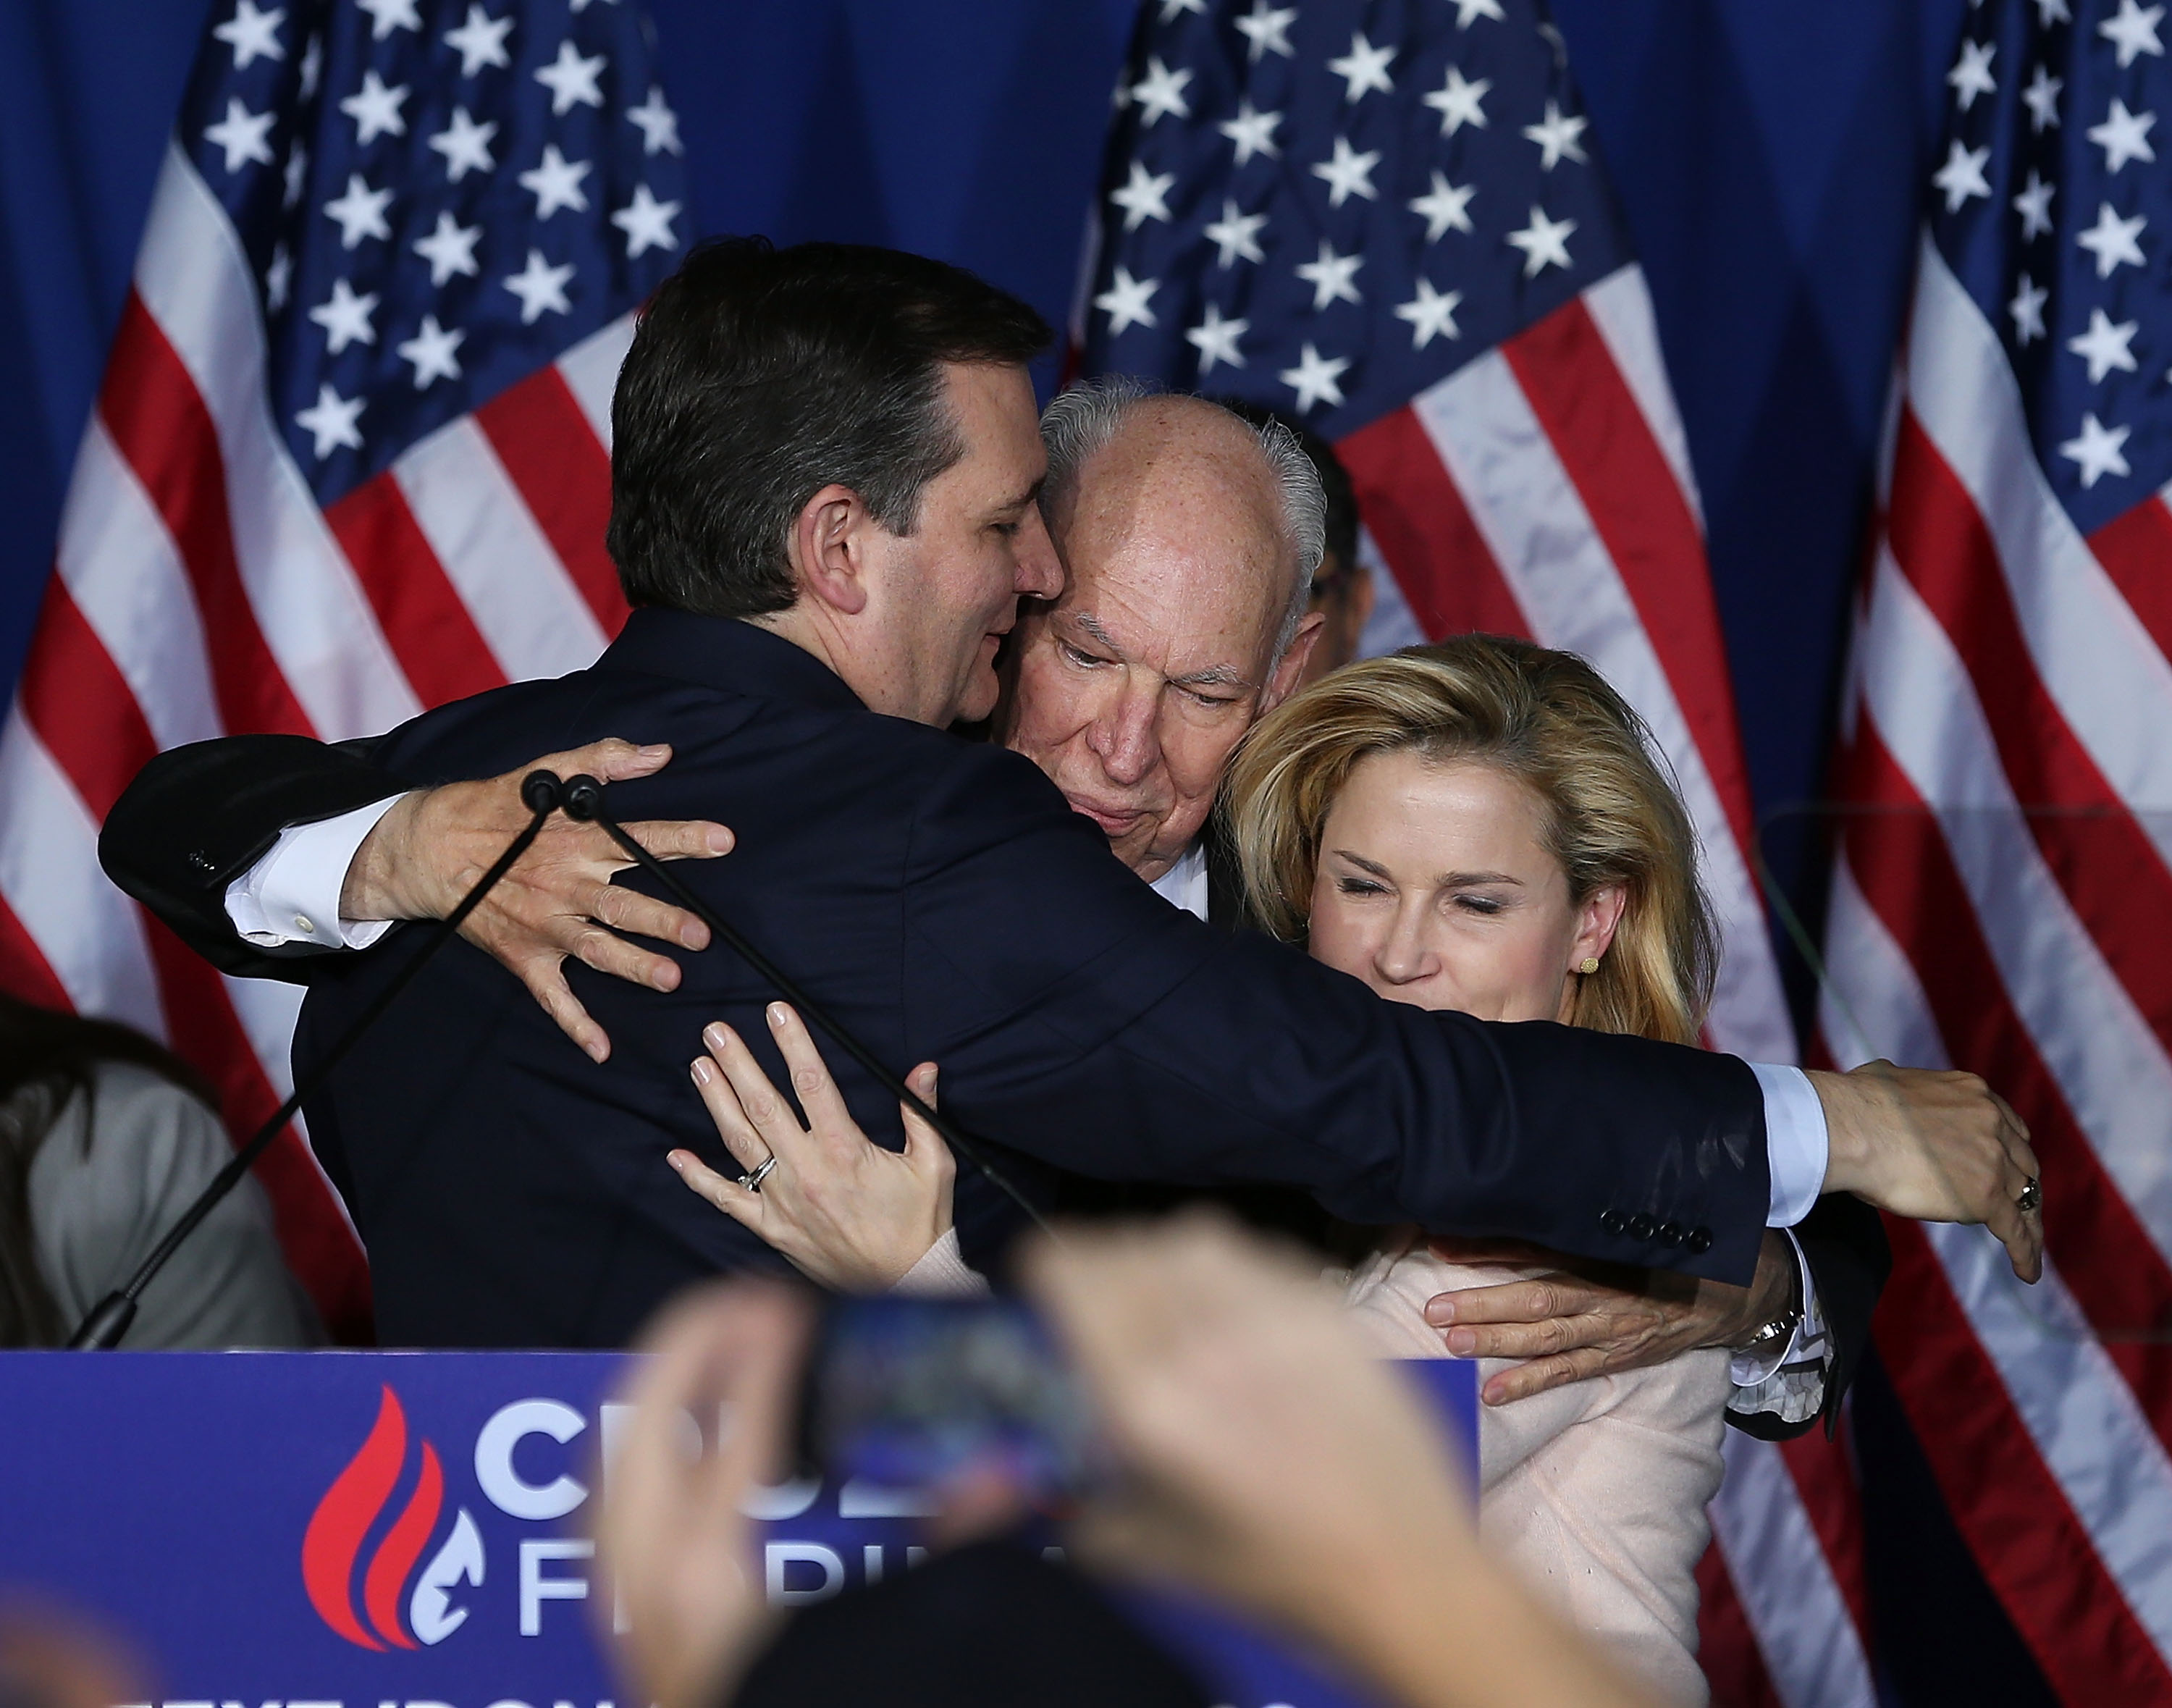 Heidi Cruz Was Elbowed In The Face The Gif Isnt Even The Most